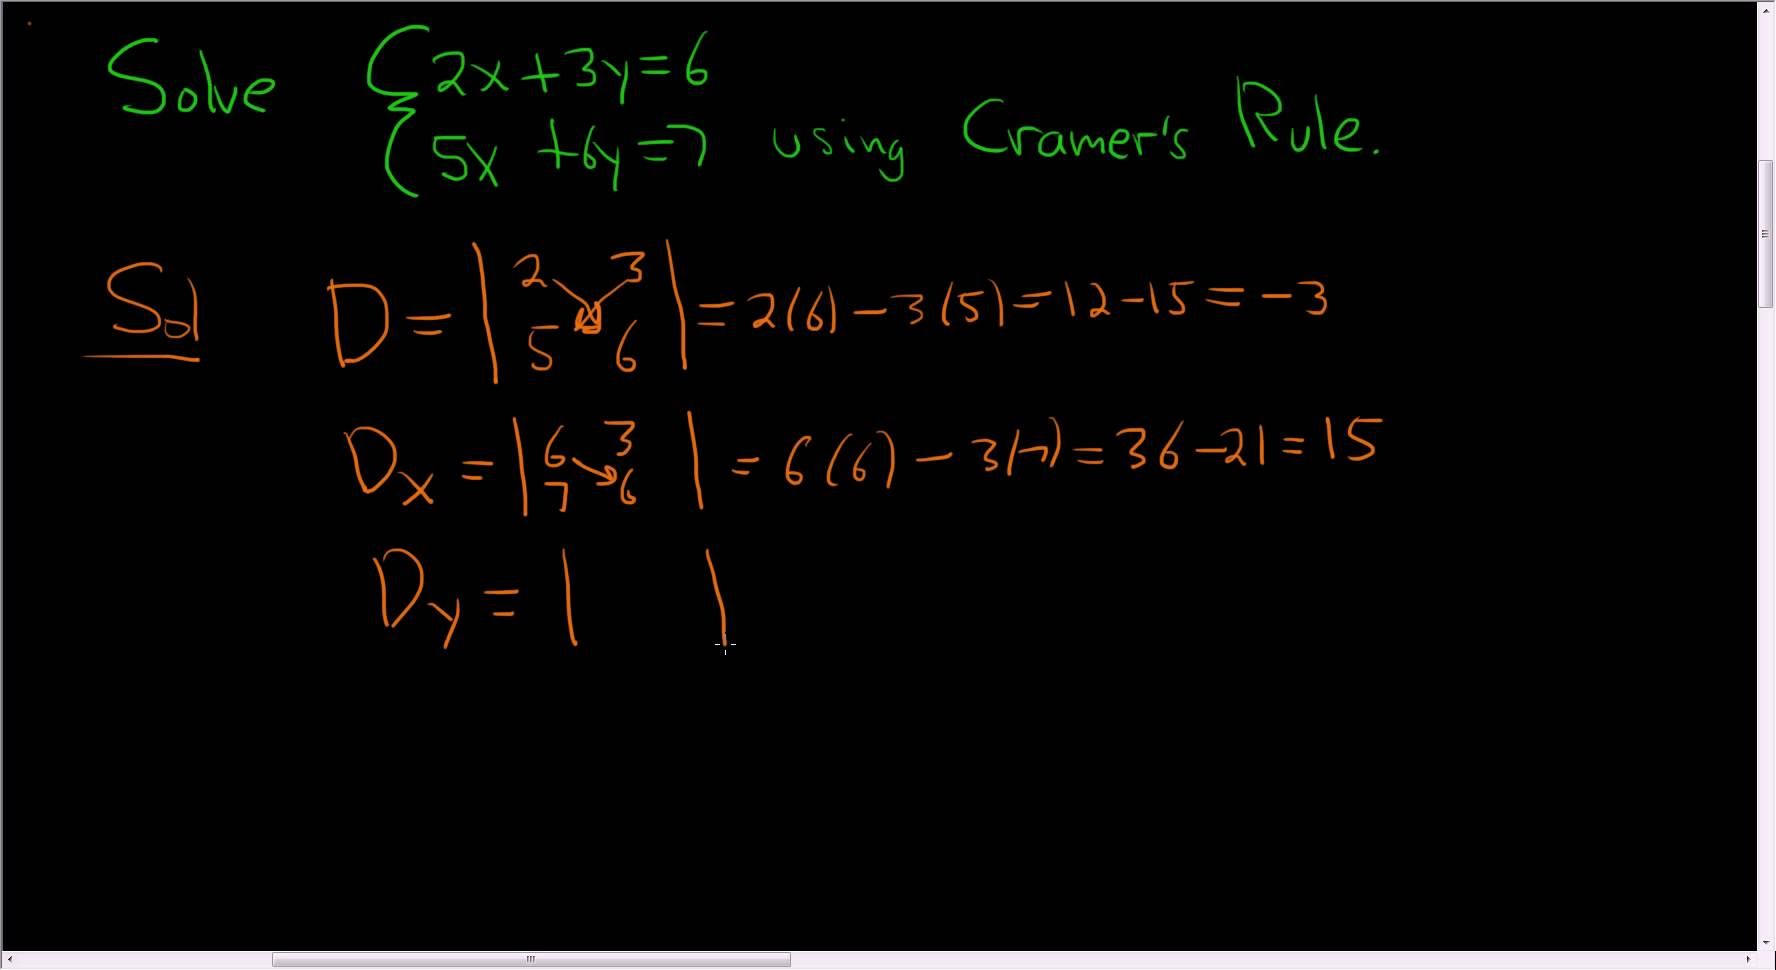 Cramers Rule Example With Two Equations